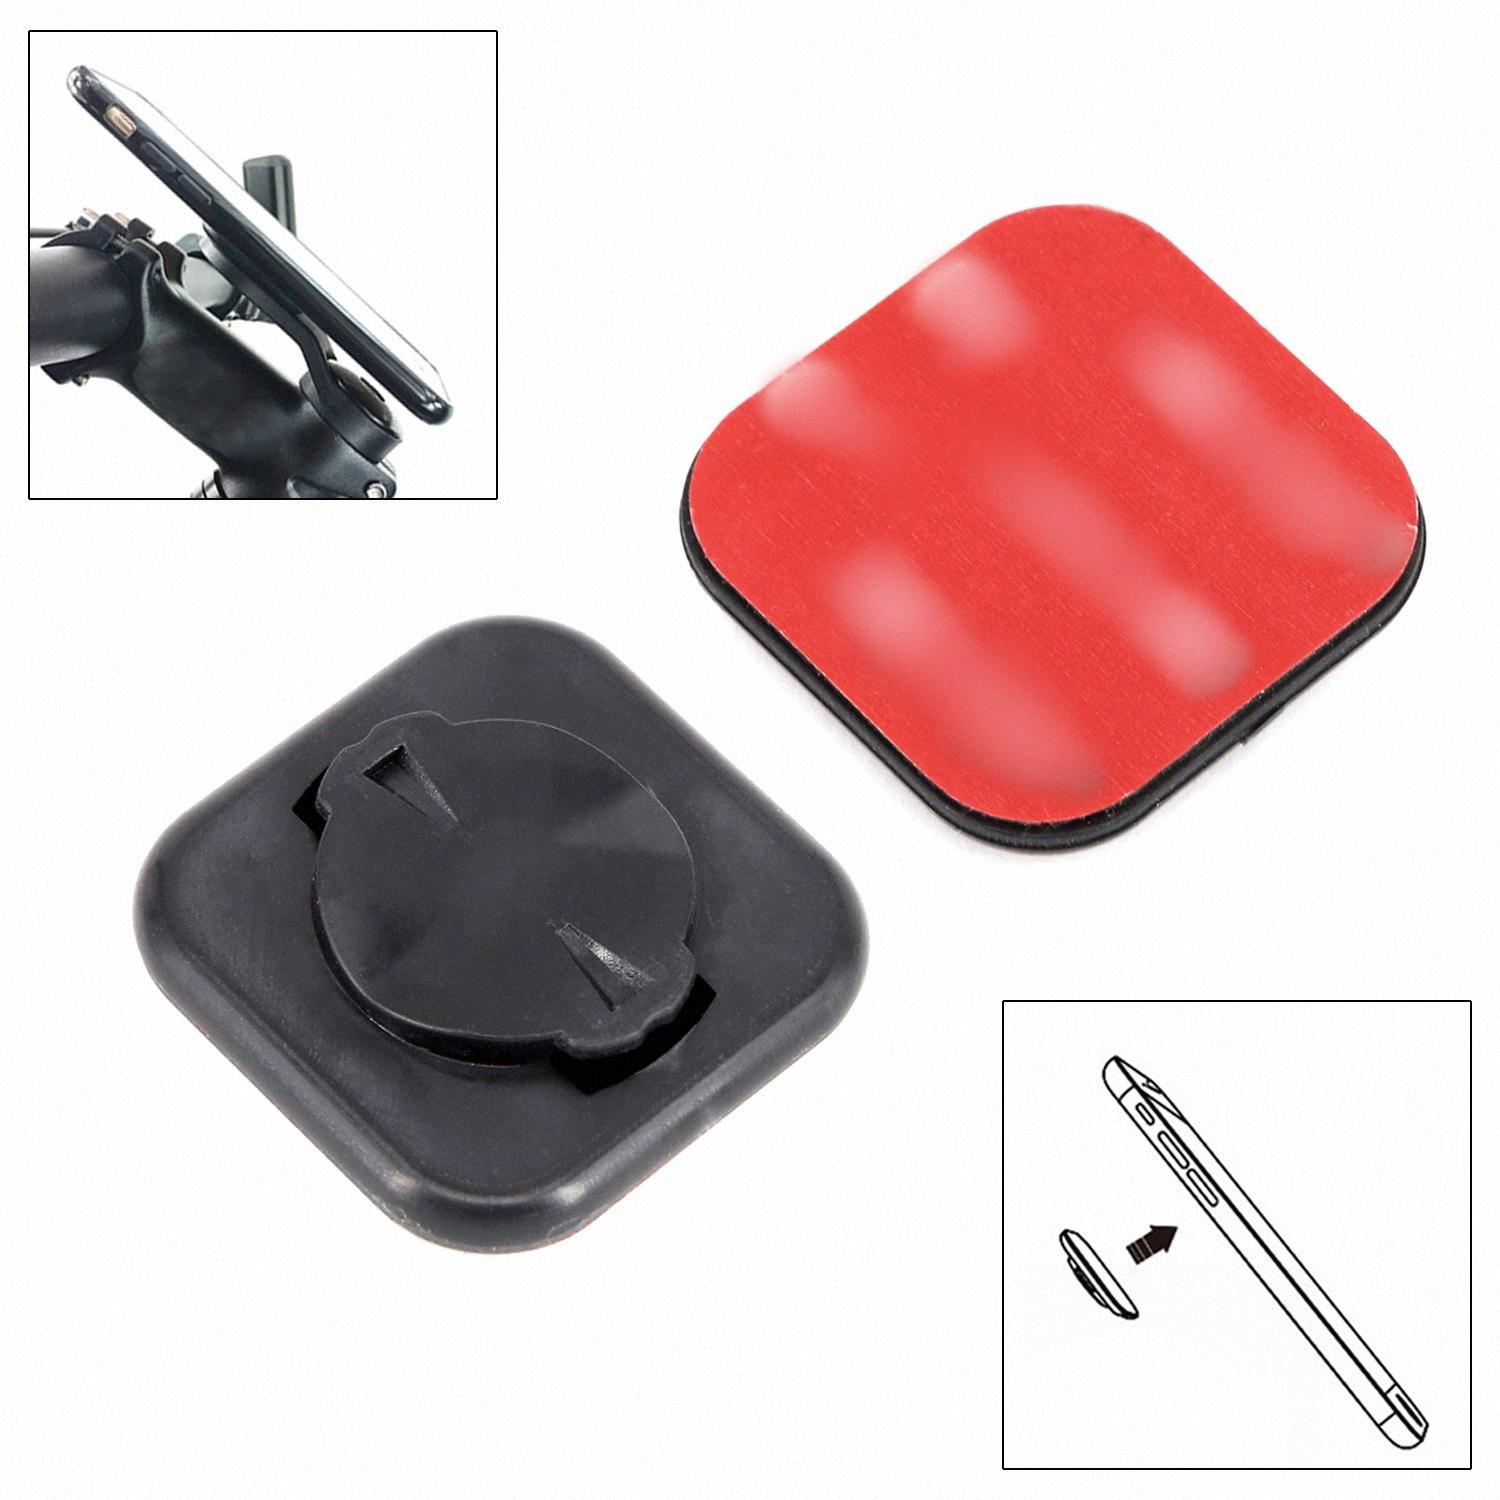 Cycling Phone Holder Module Part Fits For Garmin Edge Mount Back Bikes Adhesive Tape Phone Holder Module Part Fits For Garmin Edge Mou DOb8#